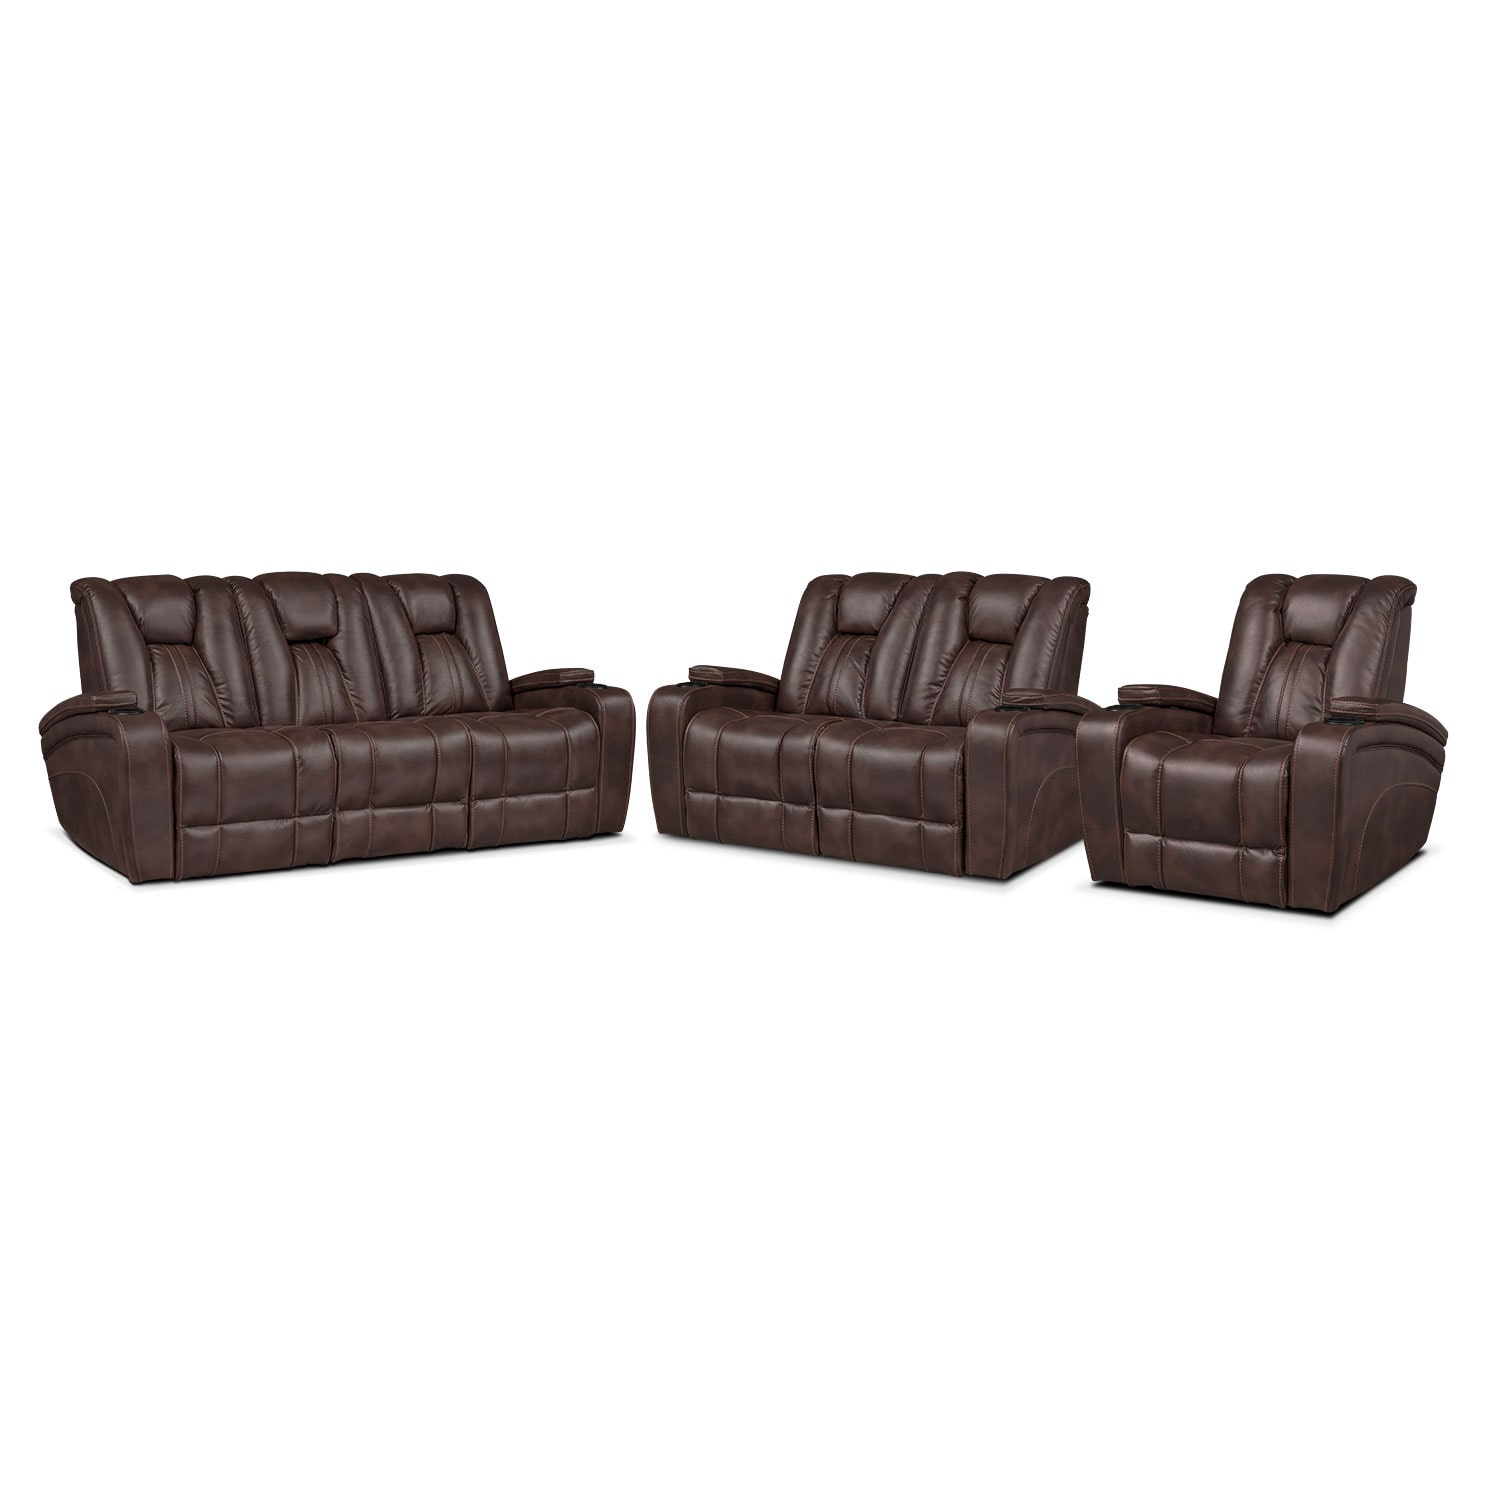 signature width warnerton trim height threshold power ashley by reclining electric loveseat design products warnertonpower item